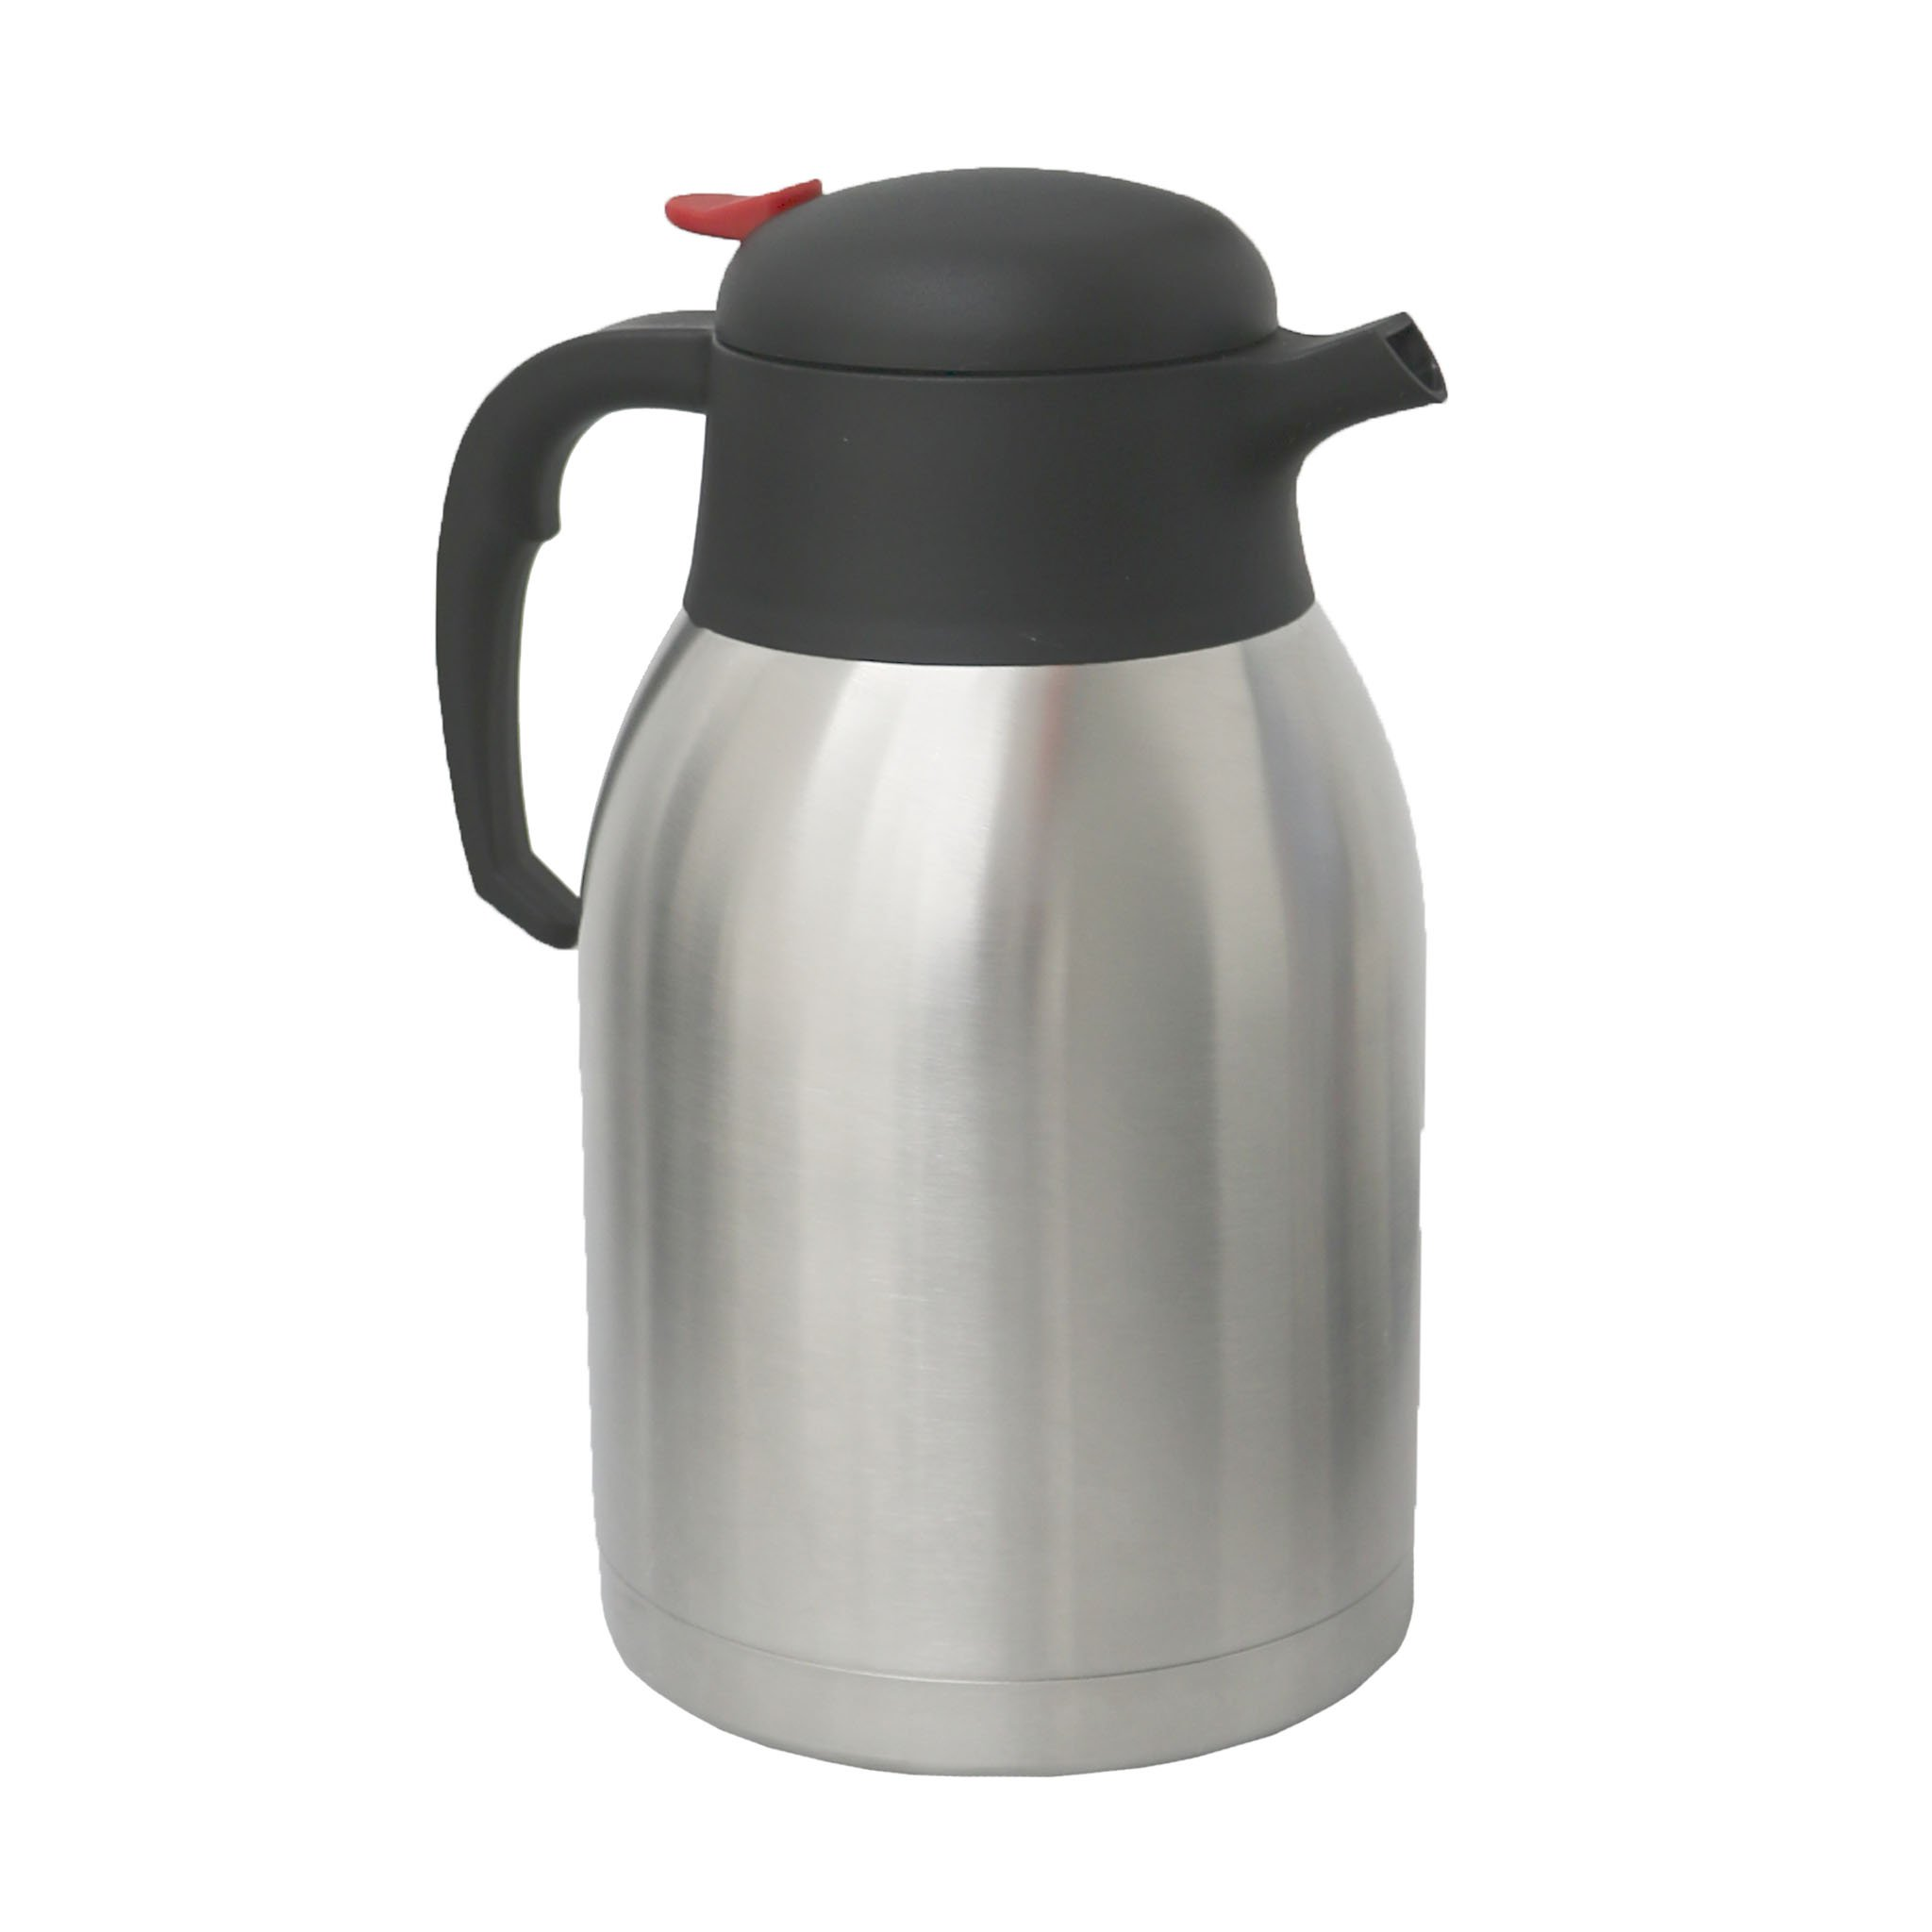 2L Stainless Steel Airpot Insulated Vacuum Thermal Flask Jug